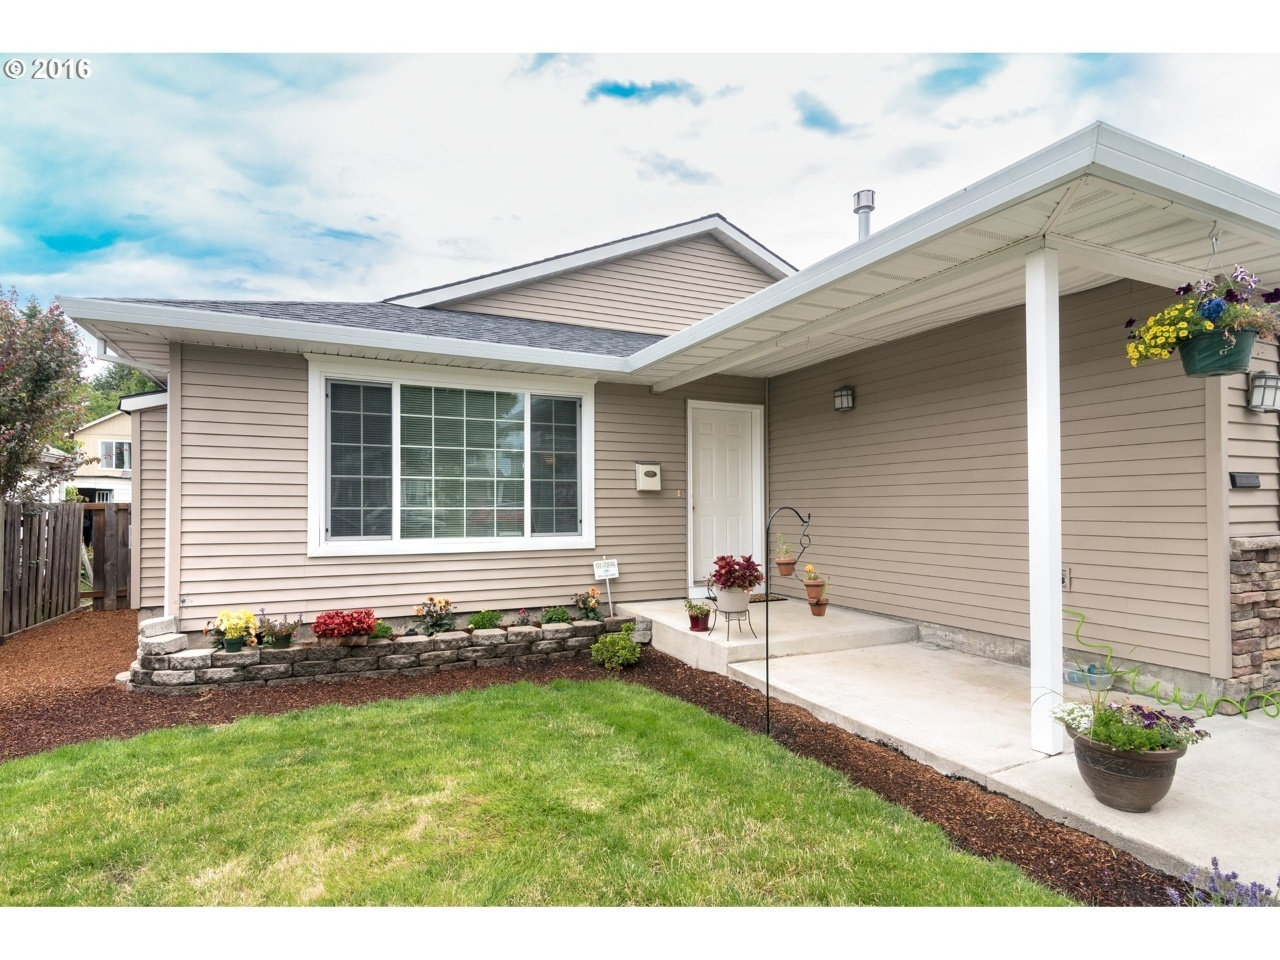 2233 23rd Ave Forest Grove Or 97116 Mls 16004068 Redfin